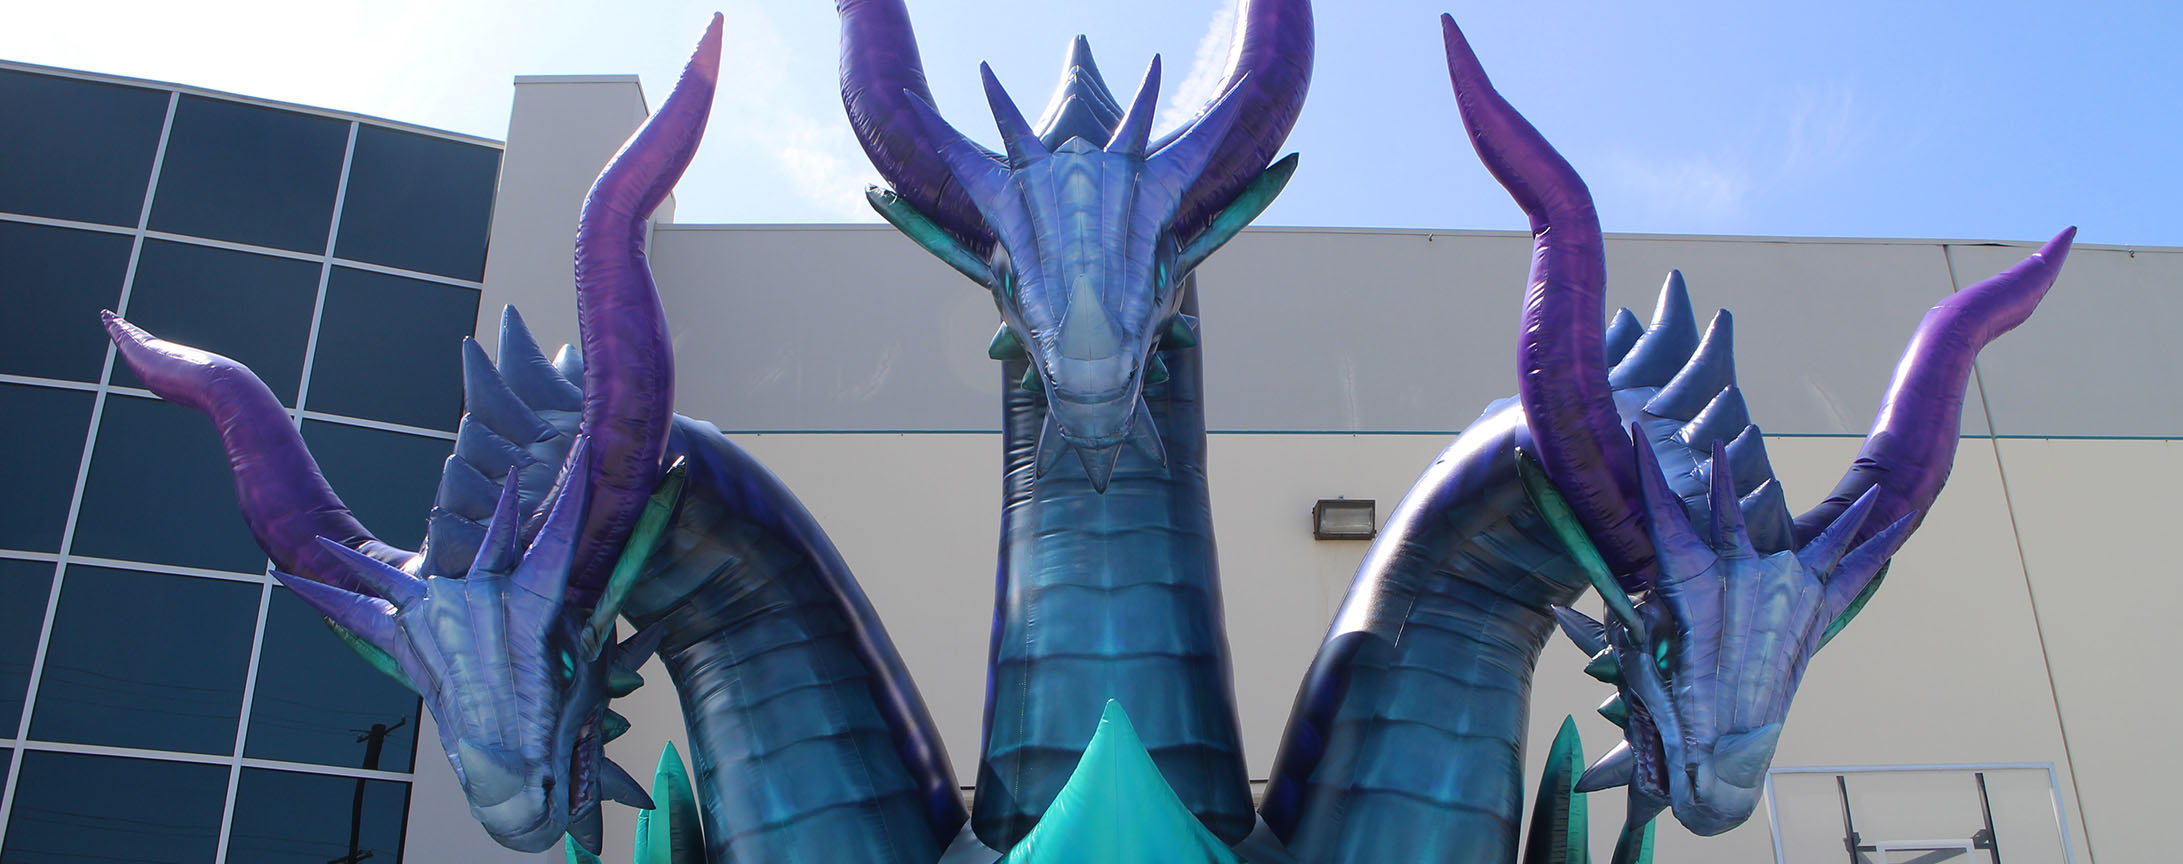 custom-inflatable-dragon-with-three-heads